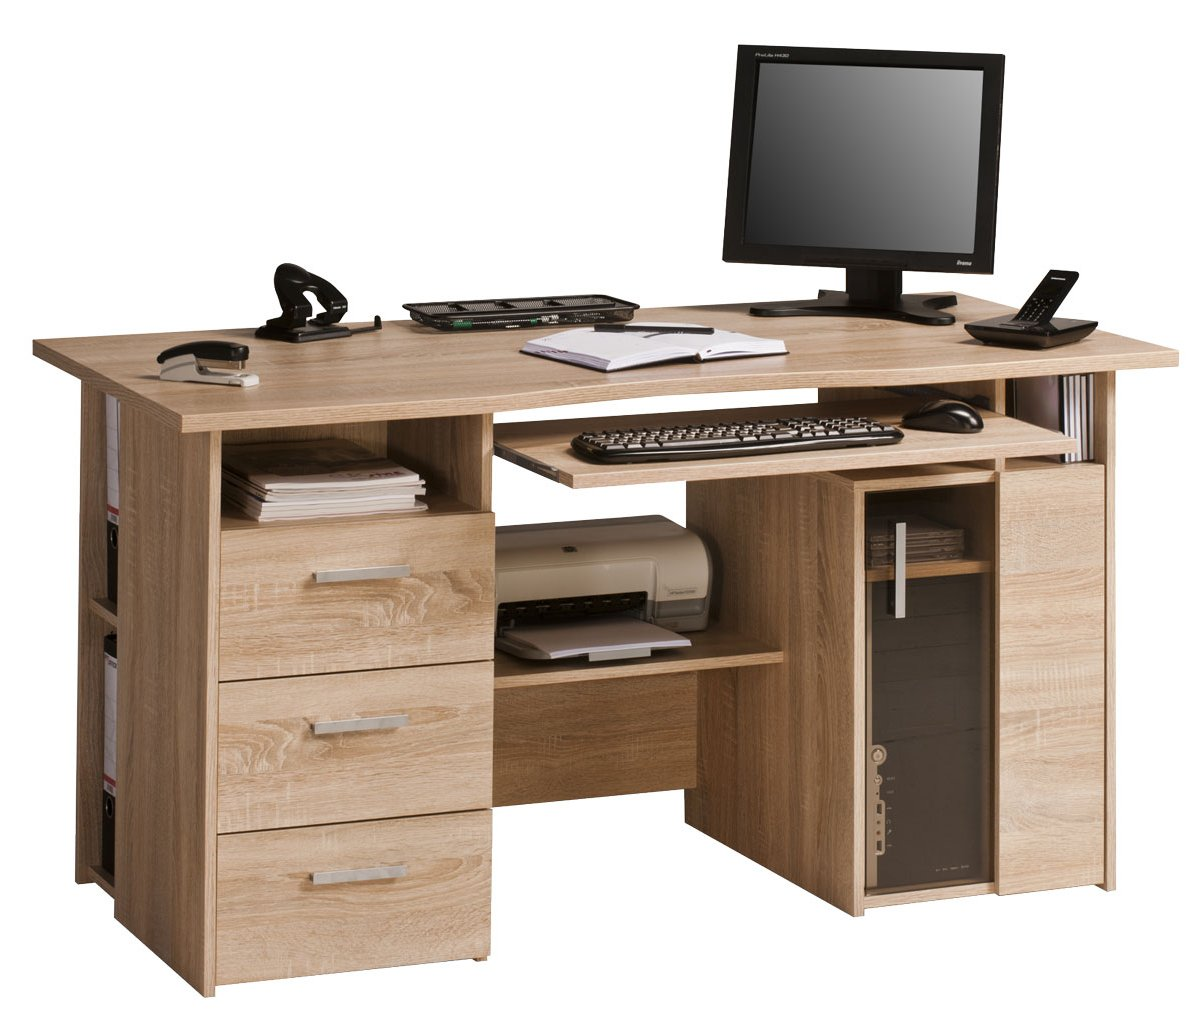 Maja Capital Oak Computer Desk